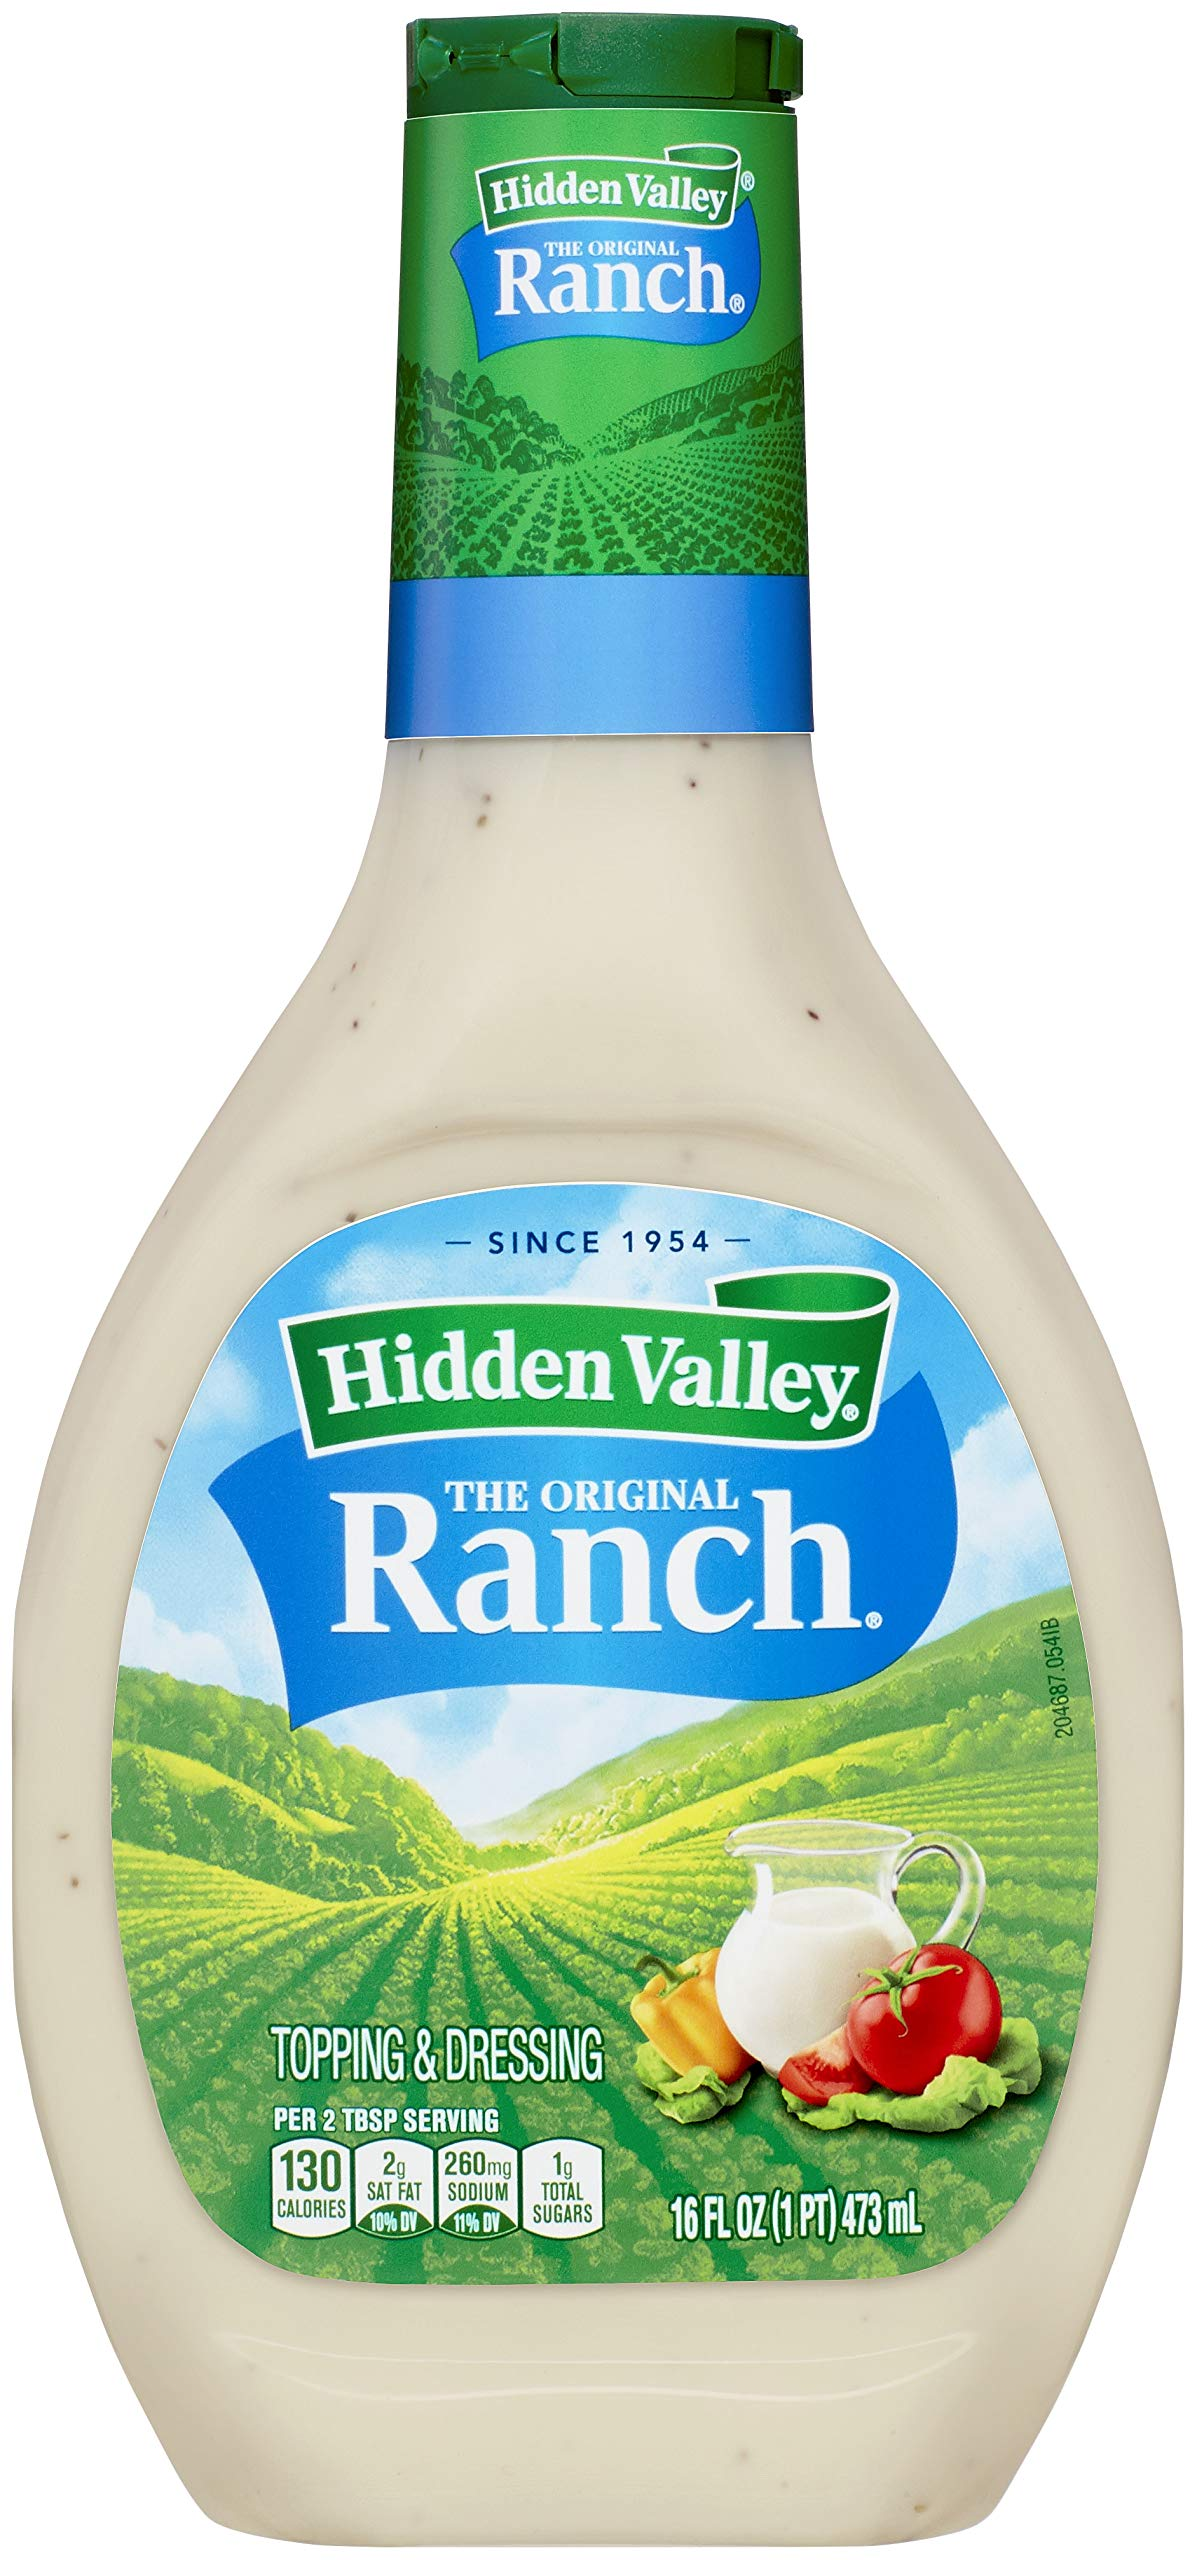 Hidden Valley Original Ranch Salad Dressing & Topping, Gluten Free - 16 Ounce Bottle (Package May Vary)